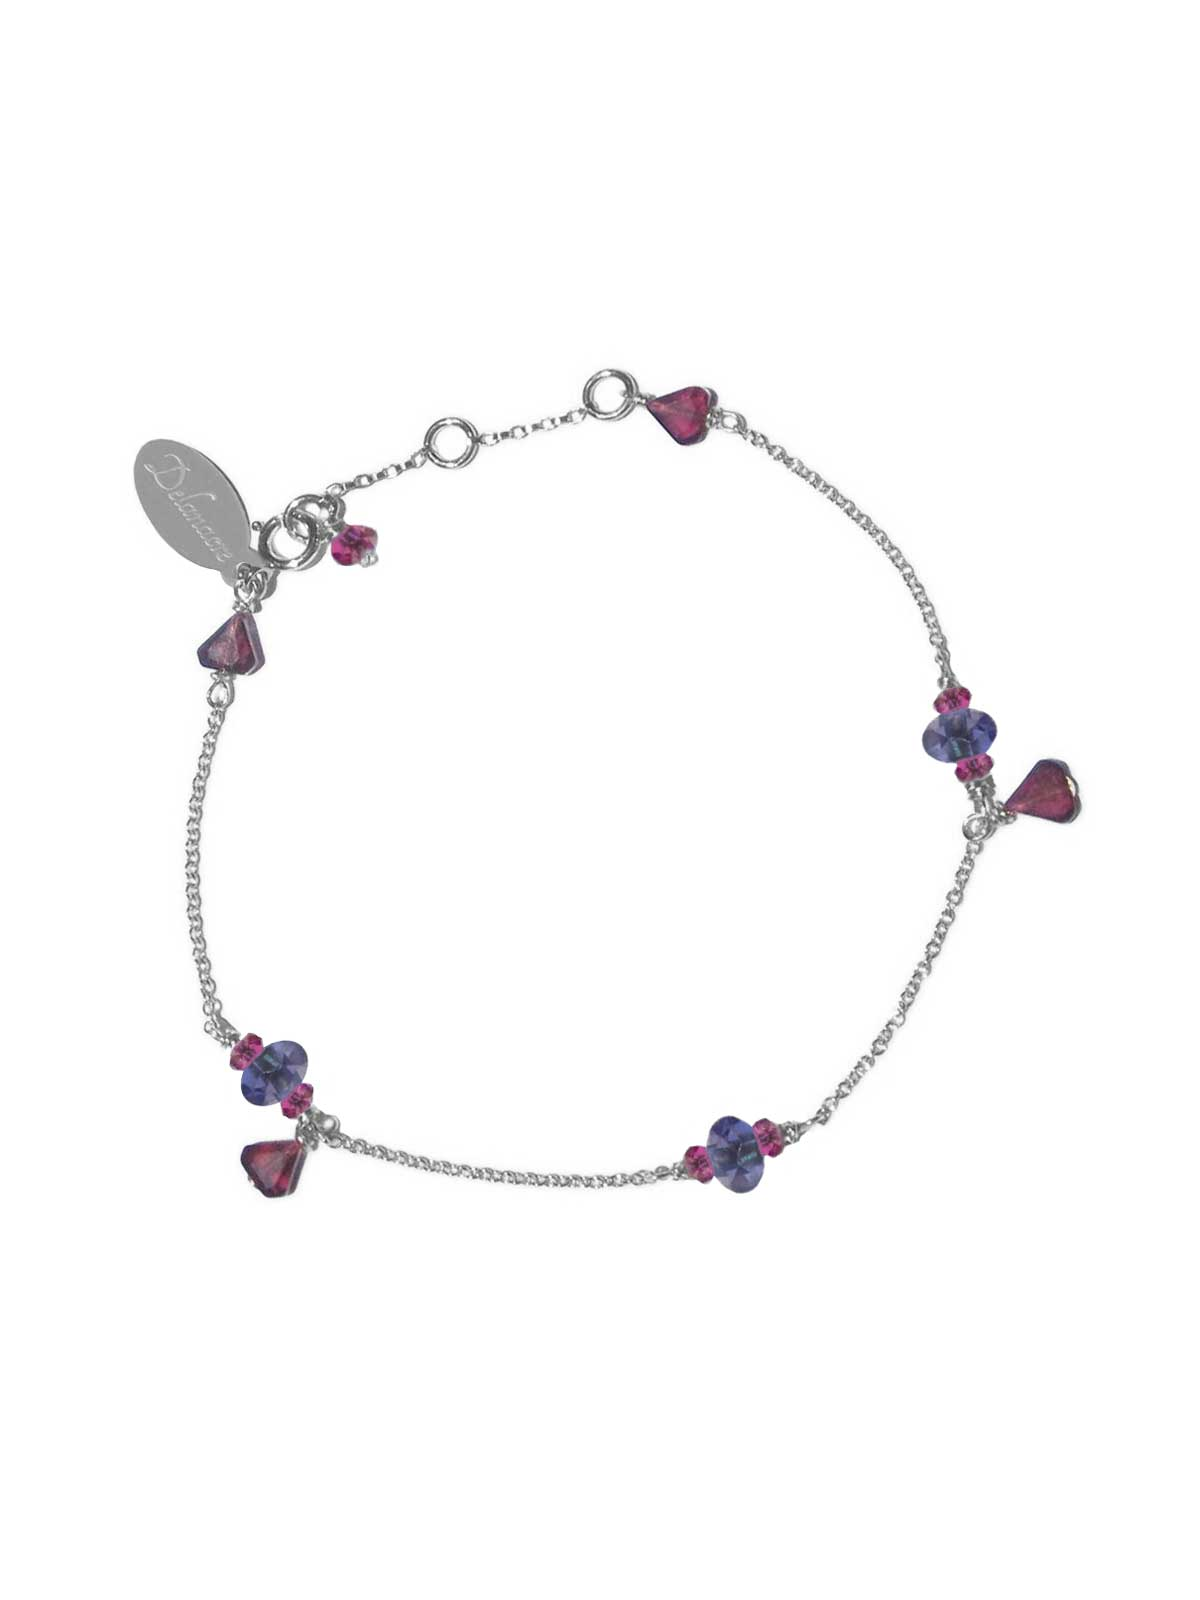 Bracelet Sterling Silver chain with Garnet and Iolite